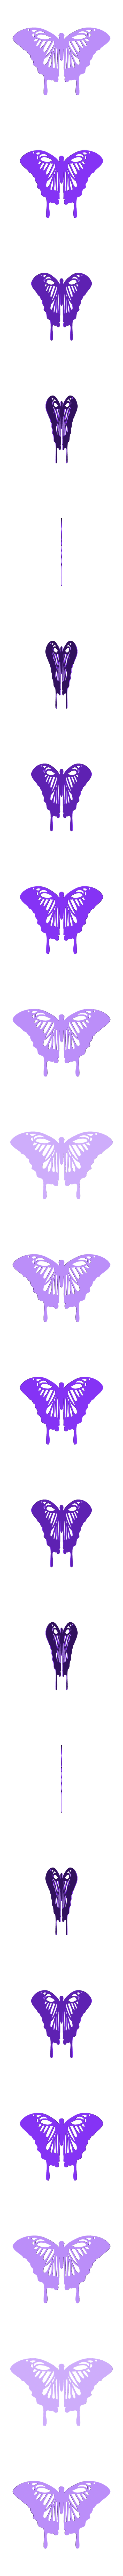 butterfly_TopAndBottom.stl Download free STL file Butterfly Necklace • 3D printable model, LordTailor